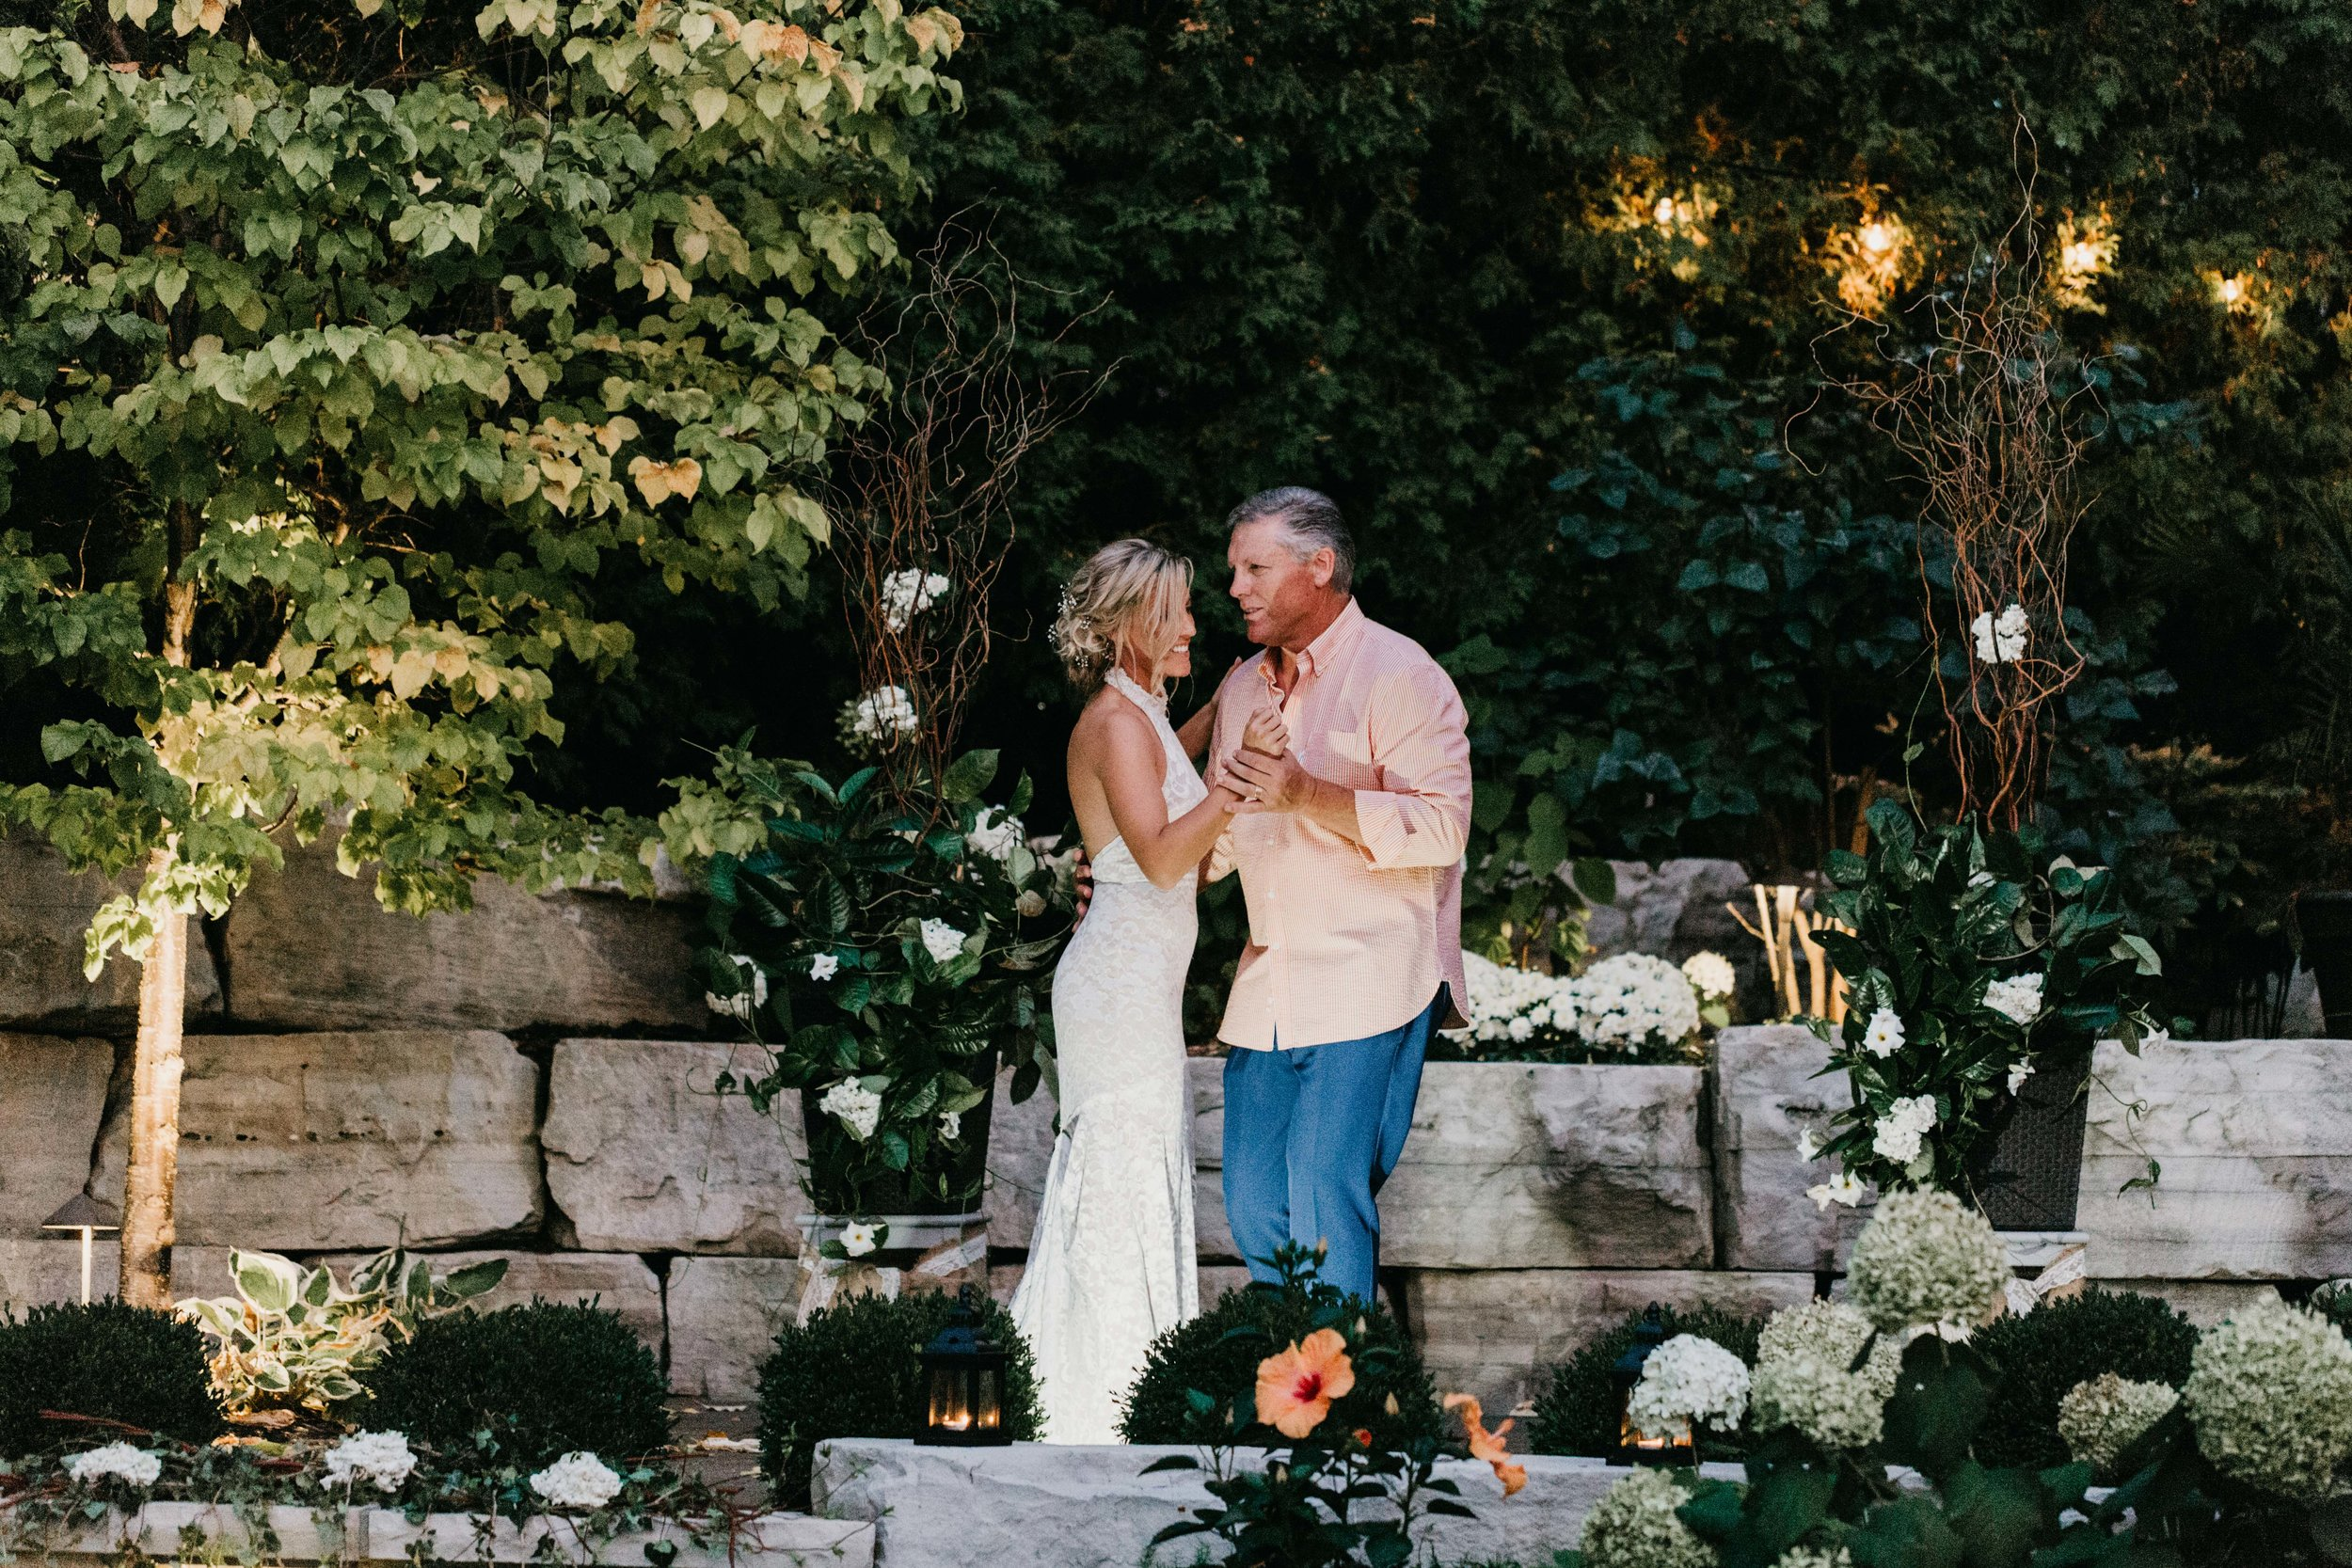 Intimate Outdoor Backyard Wedding Ancaster Ontario-223.jpg